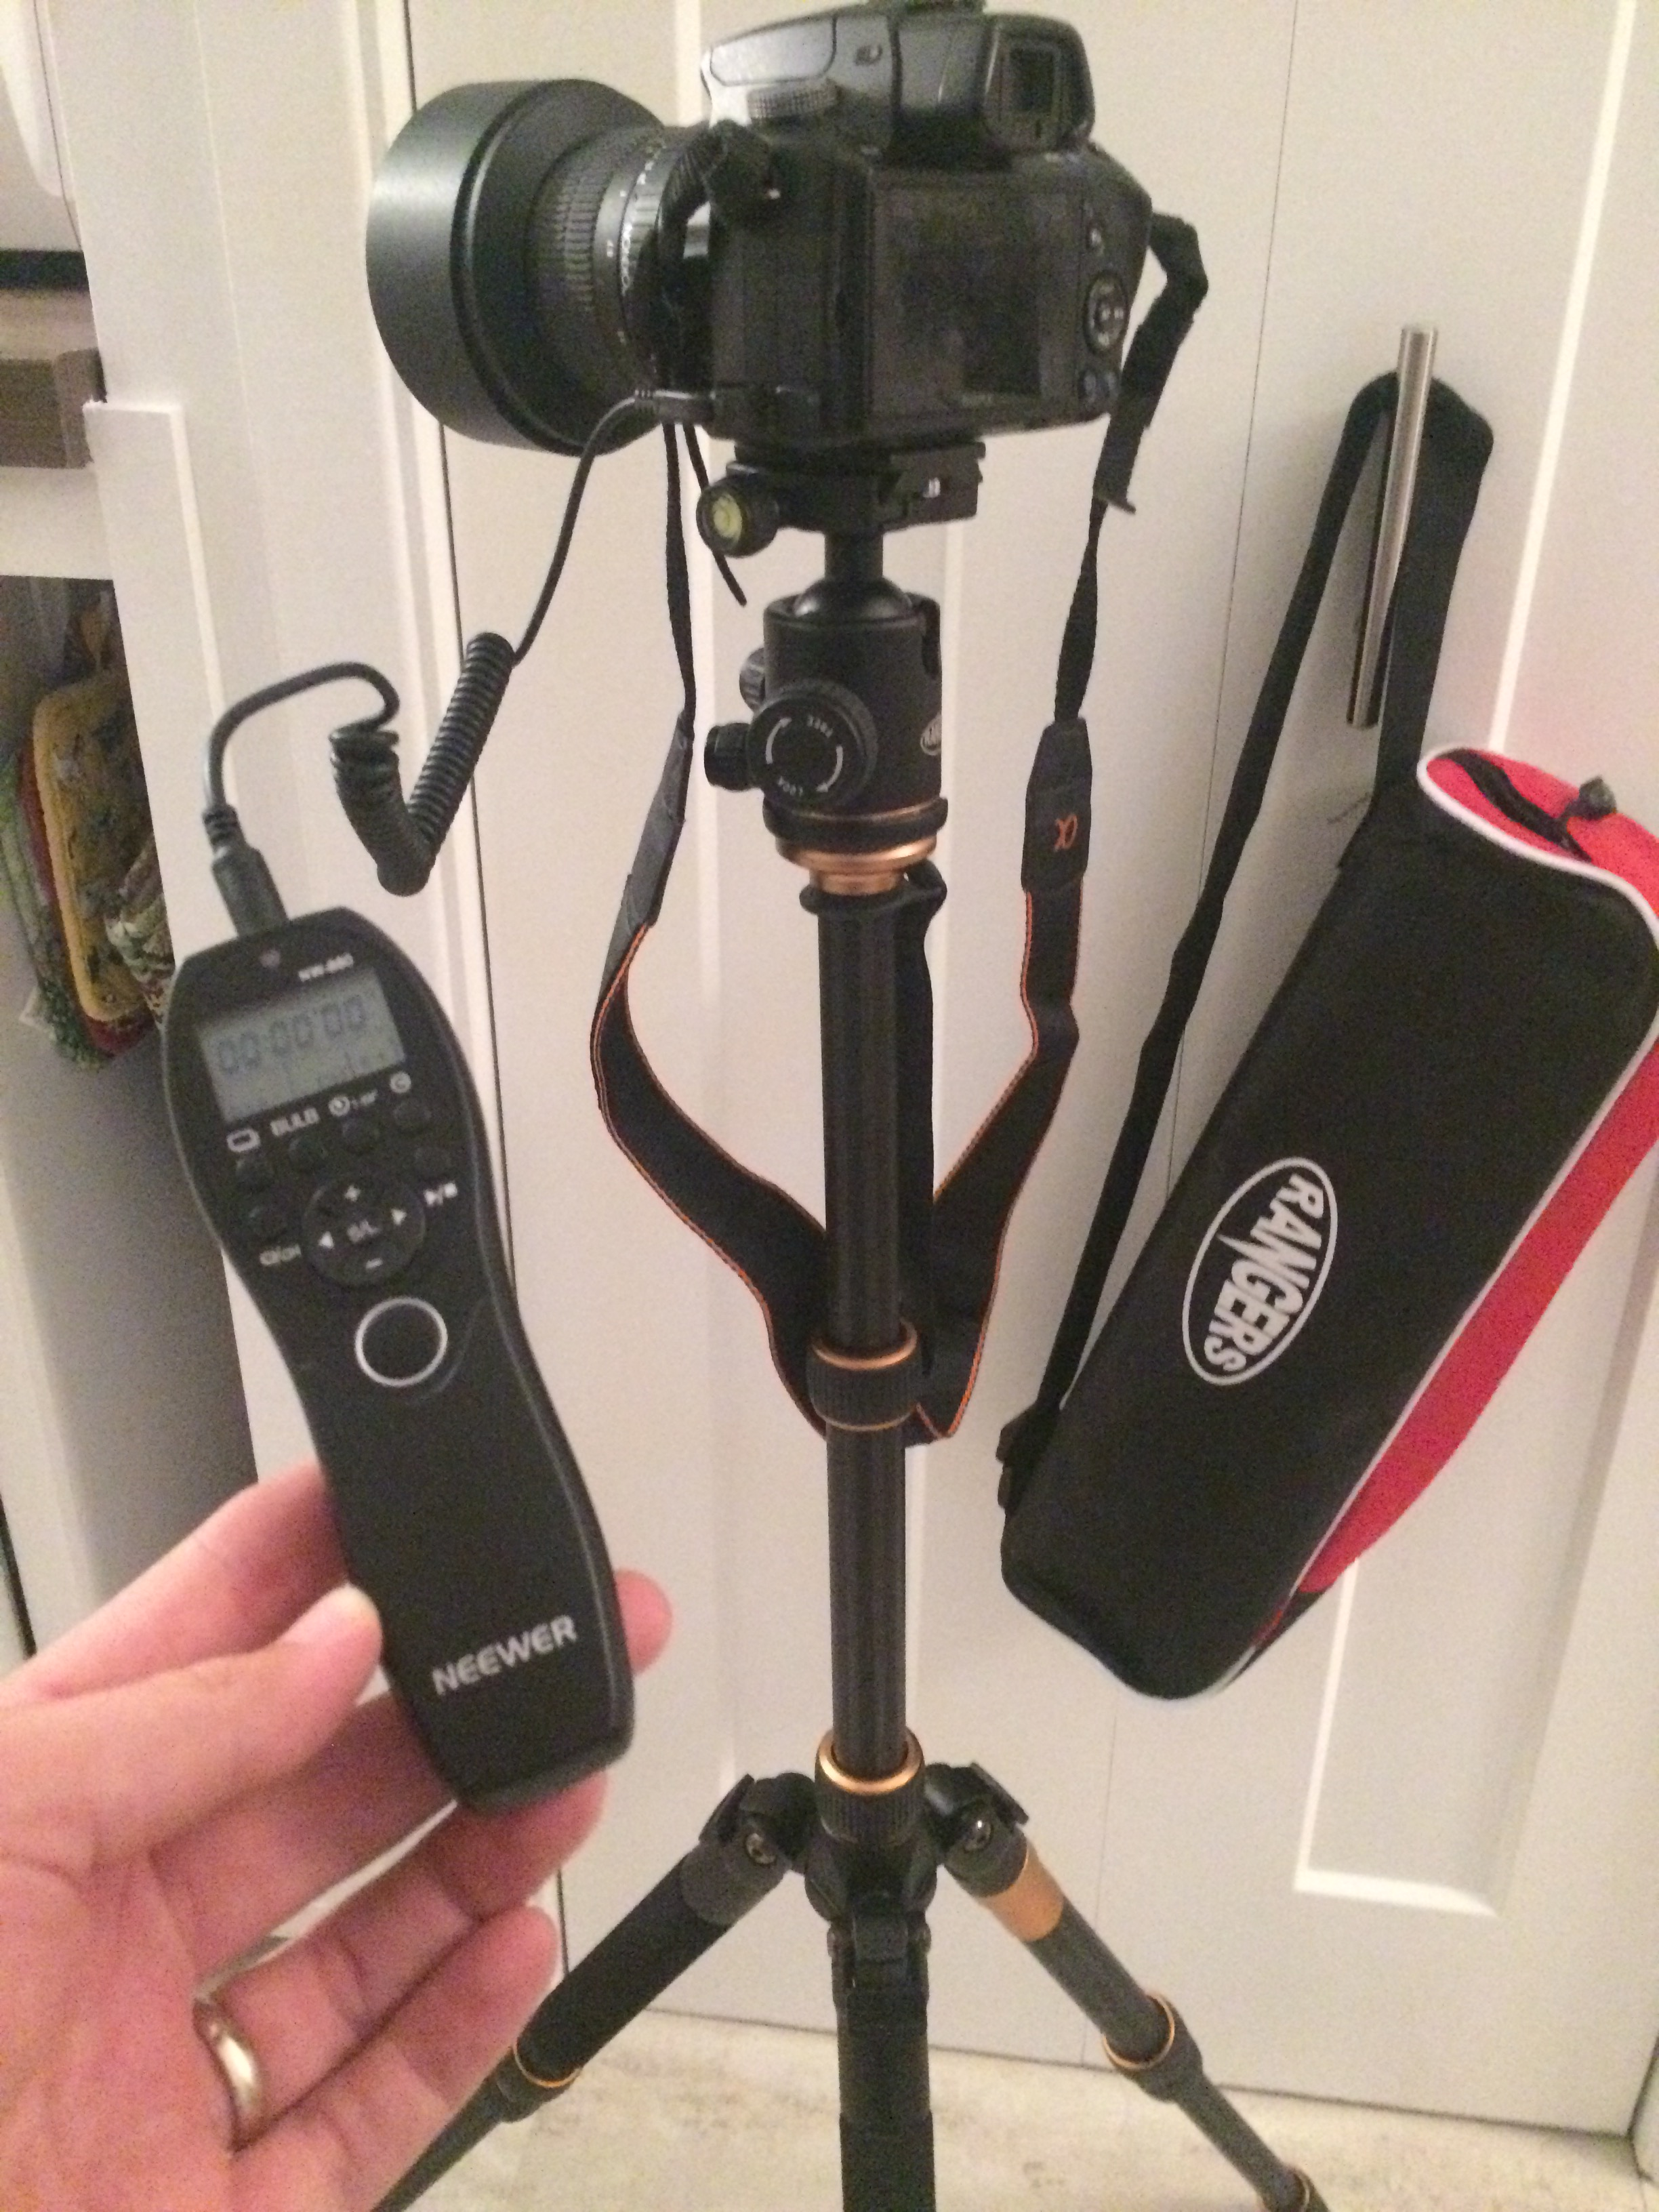 Ranger ball-head tripod and Neewer intervalometer